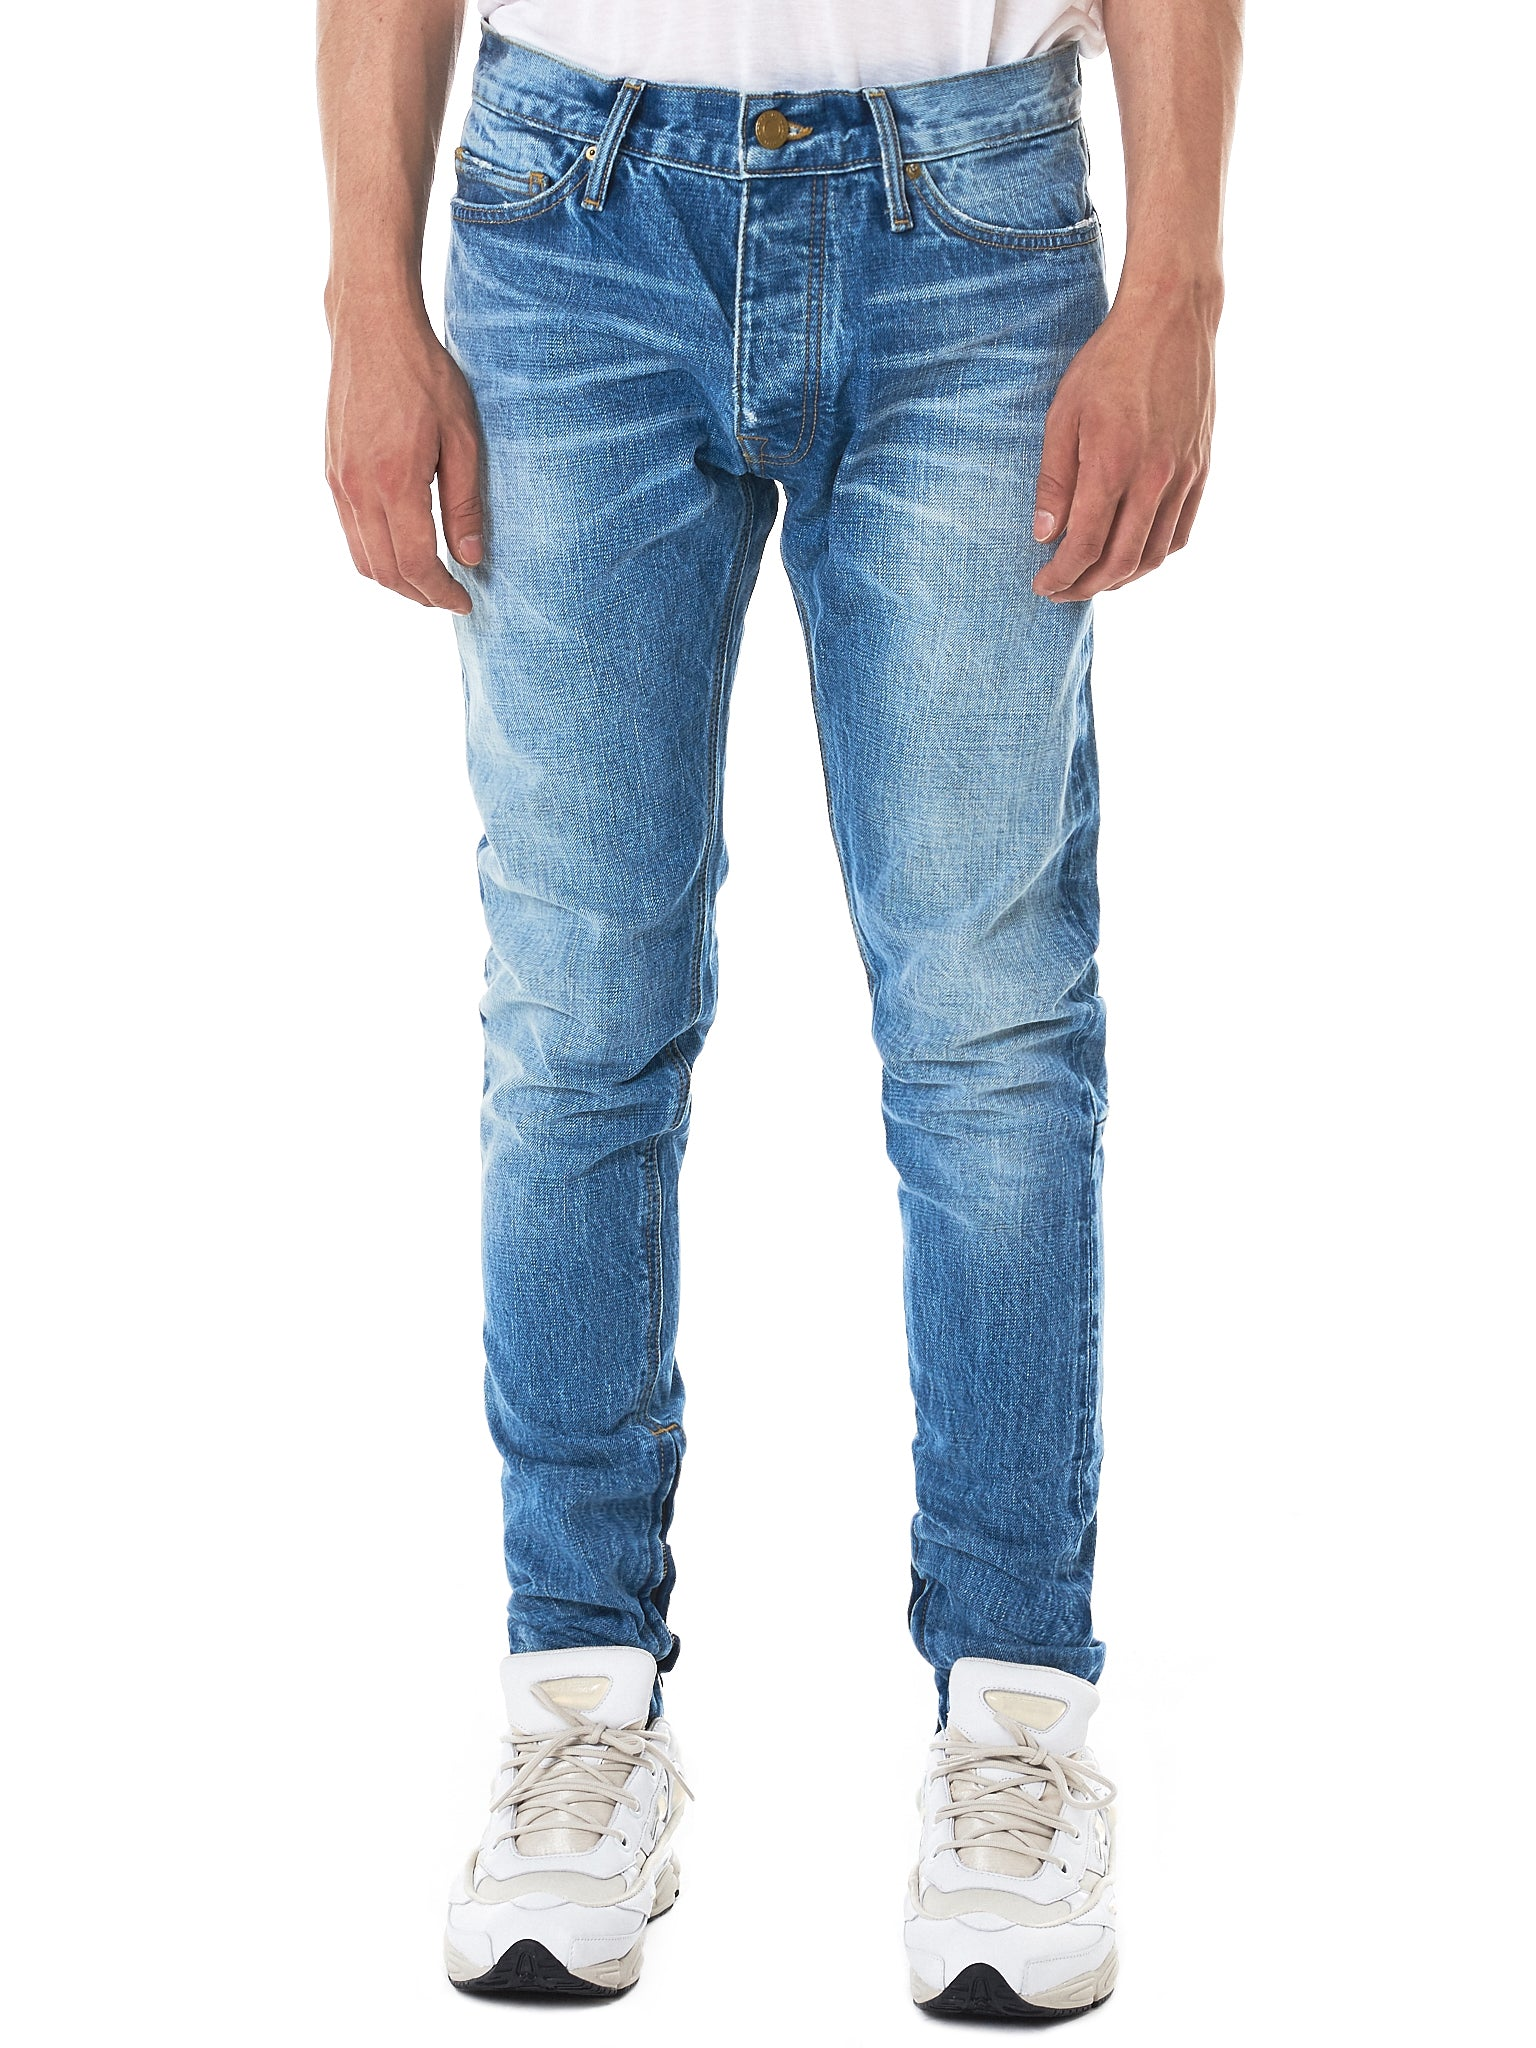 The Vintage denim jeans - Green Fear of God YrE0cK8P0